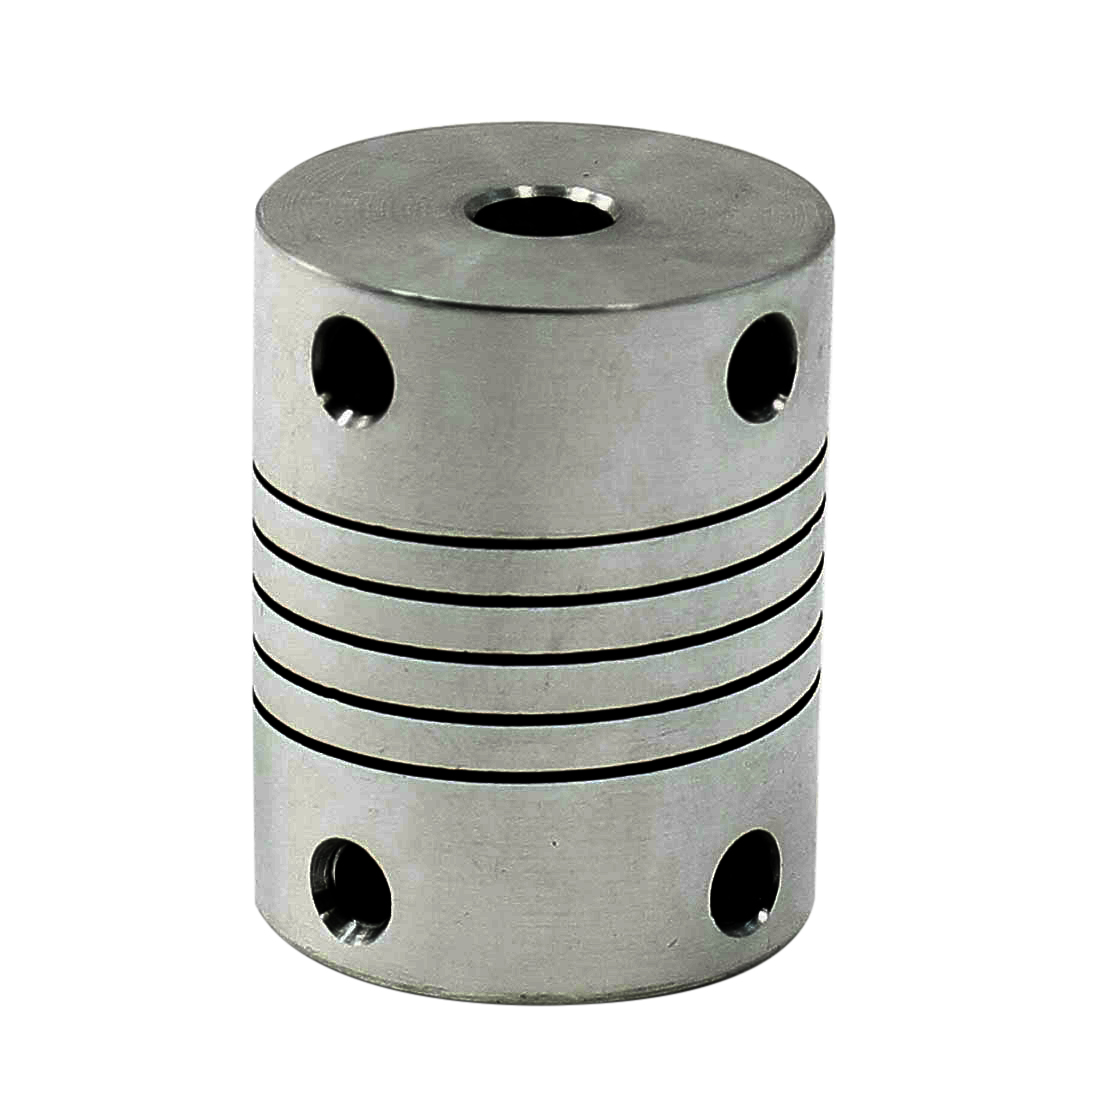 6.35mm to 8mm CNC Stepper Motor JAW Shaft Flexible Coupling Coupler